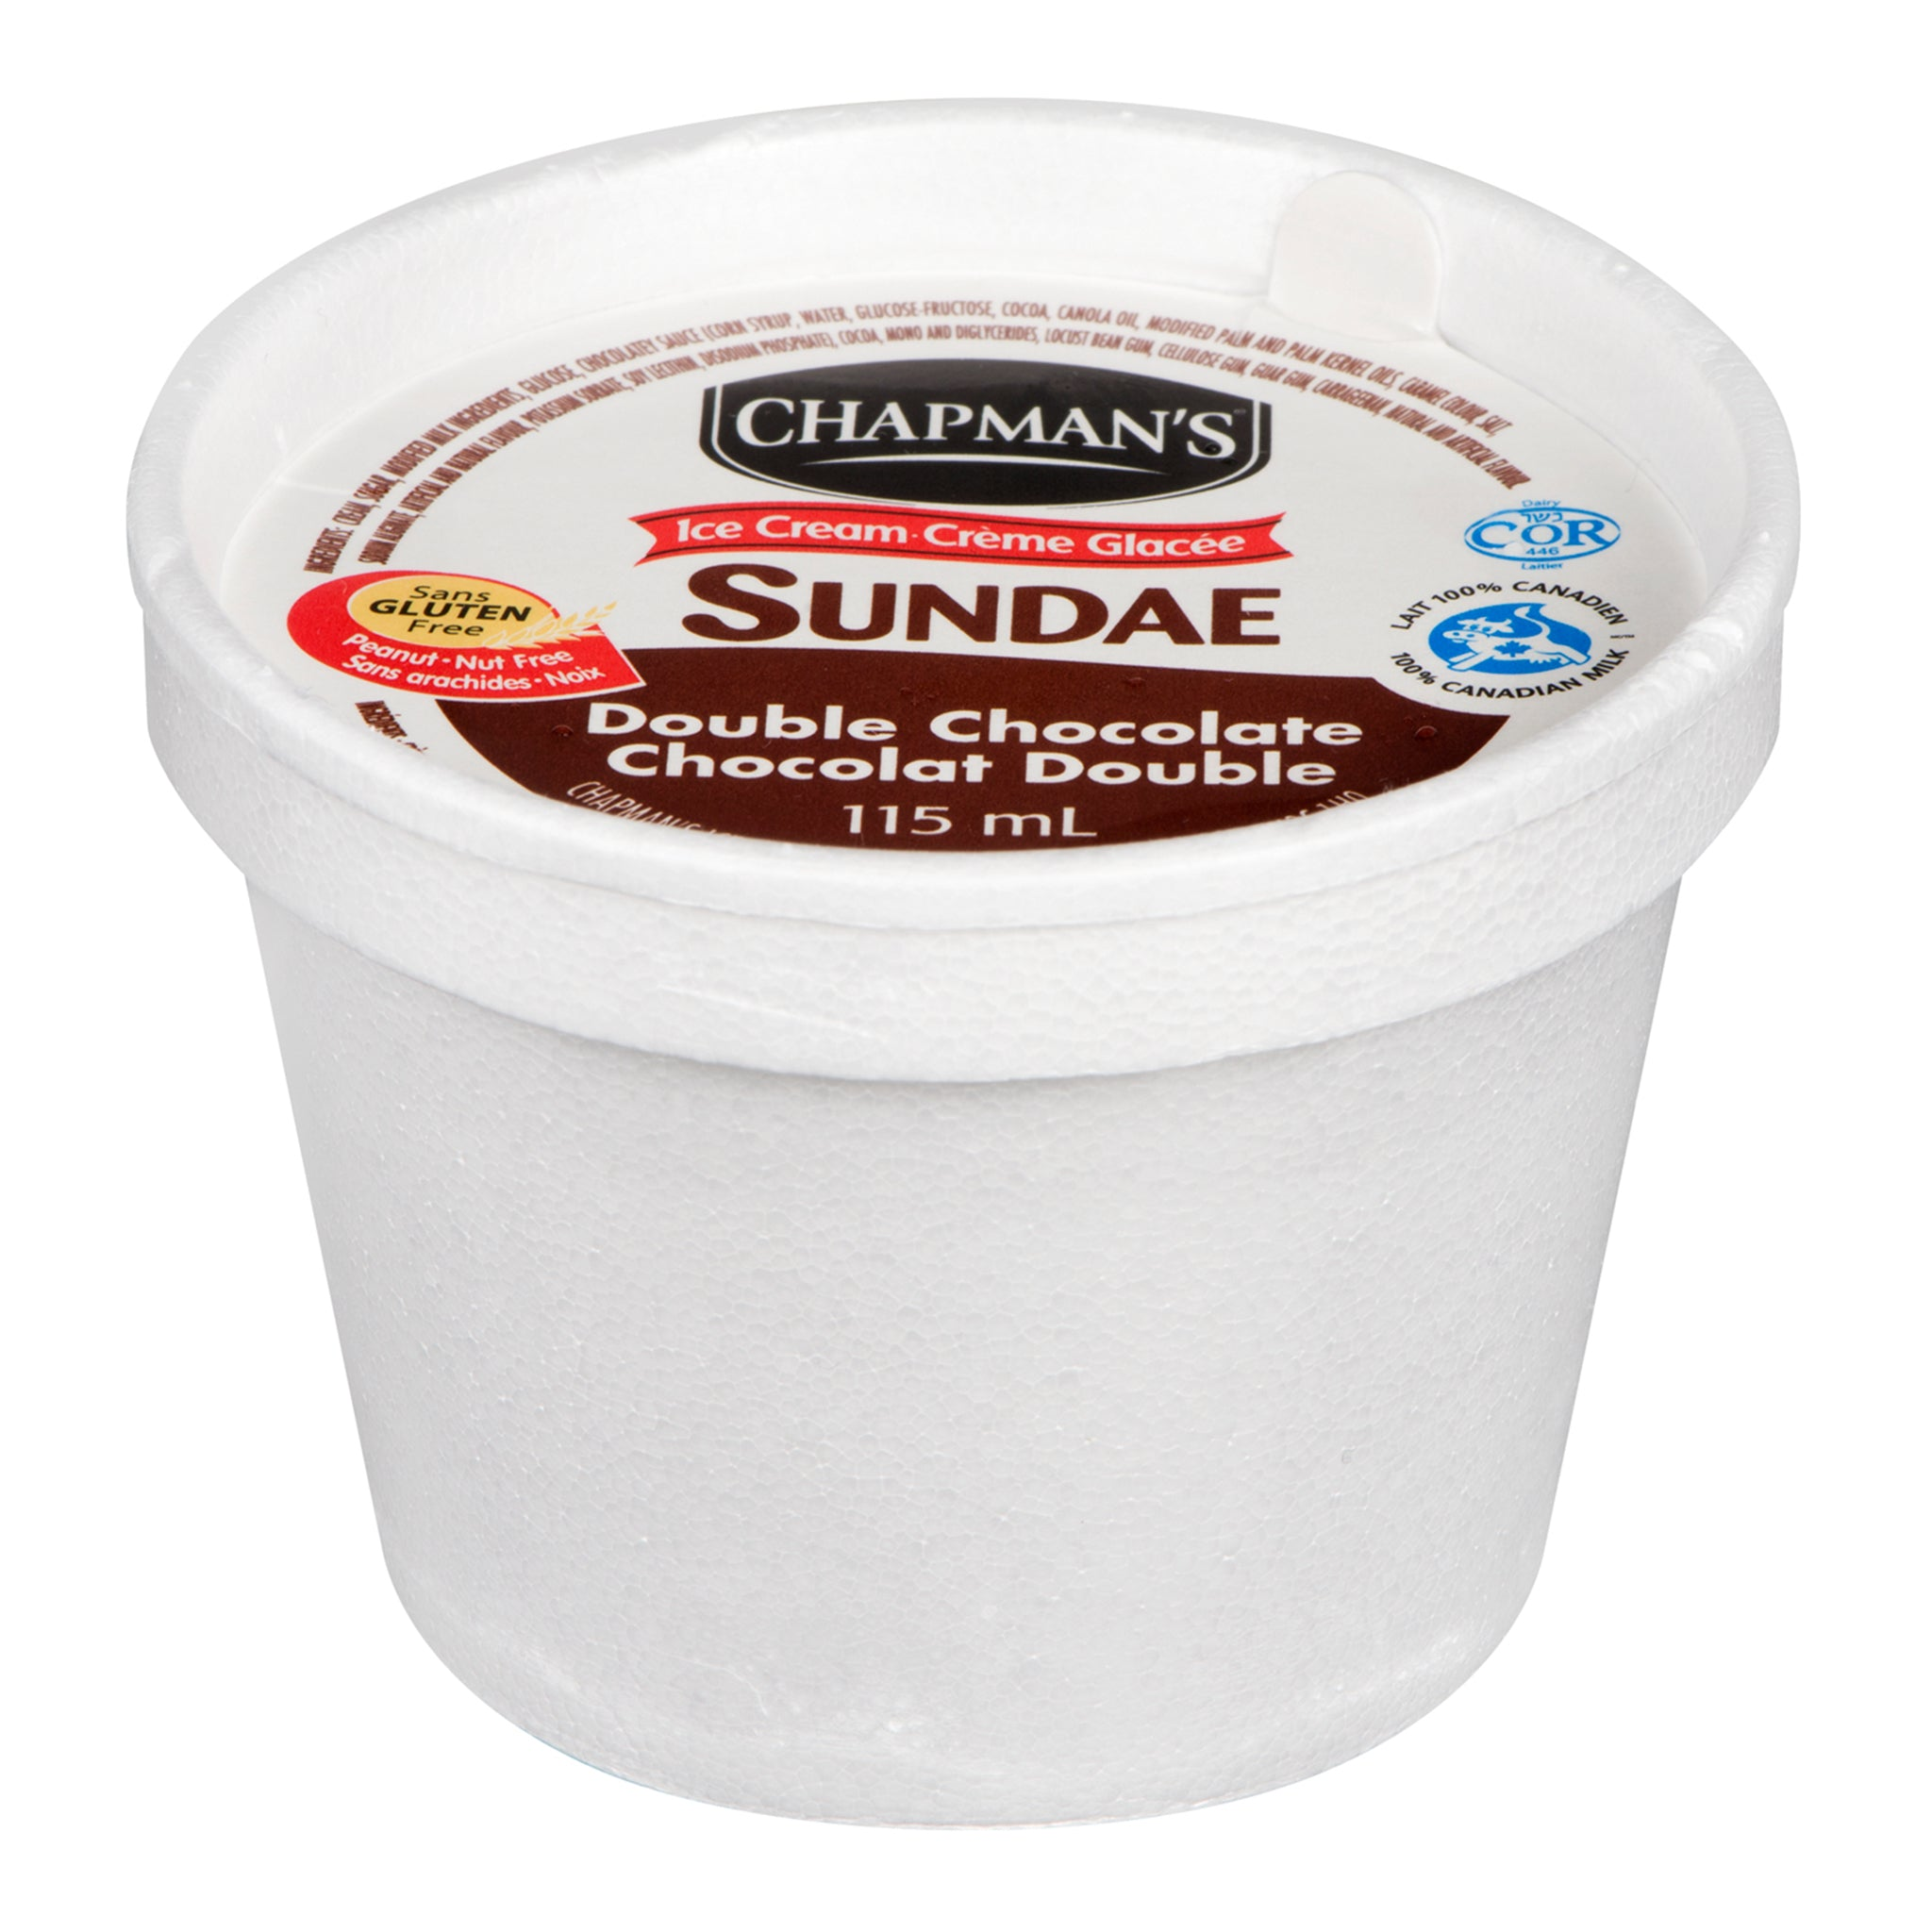 Chapman's Chocolate Ice Cream Cups 115 ml - 24 Pack [$0.50/cup]